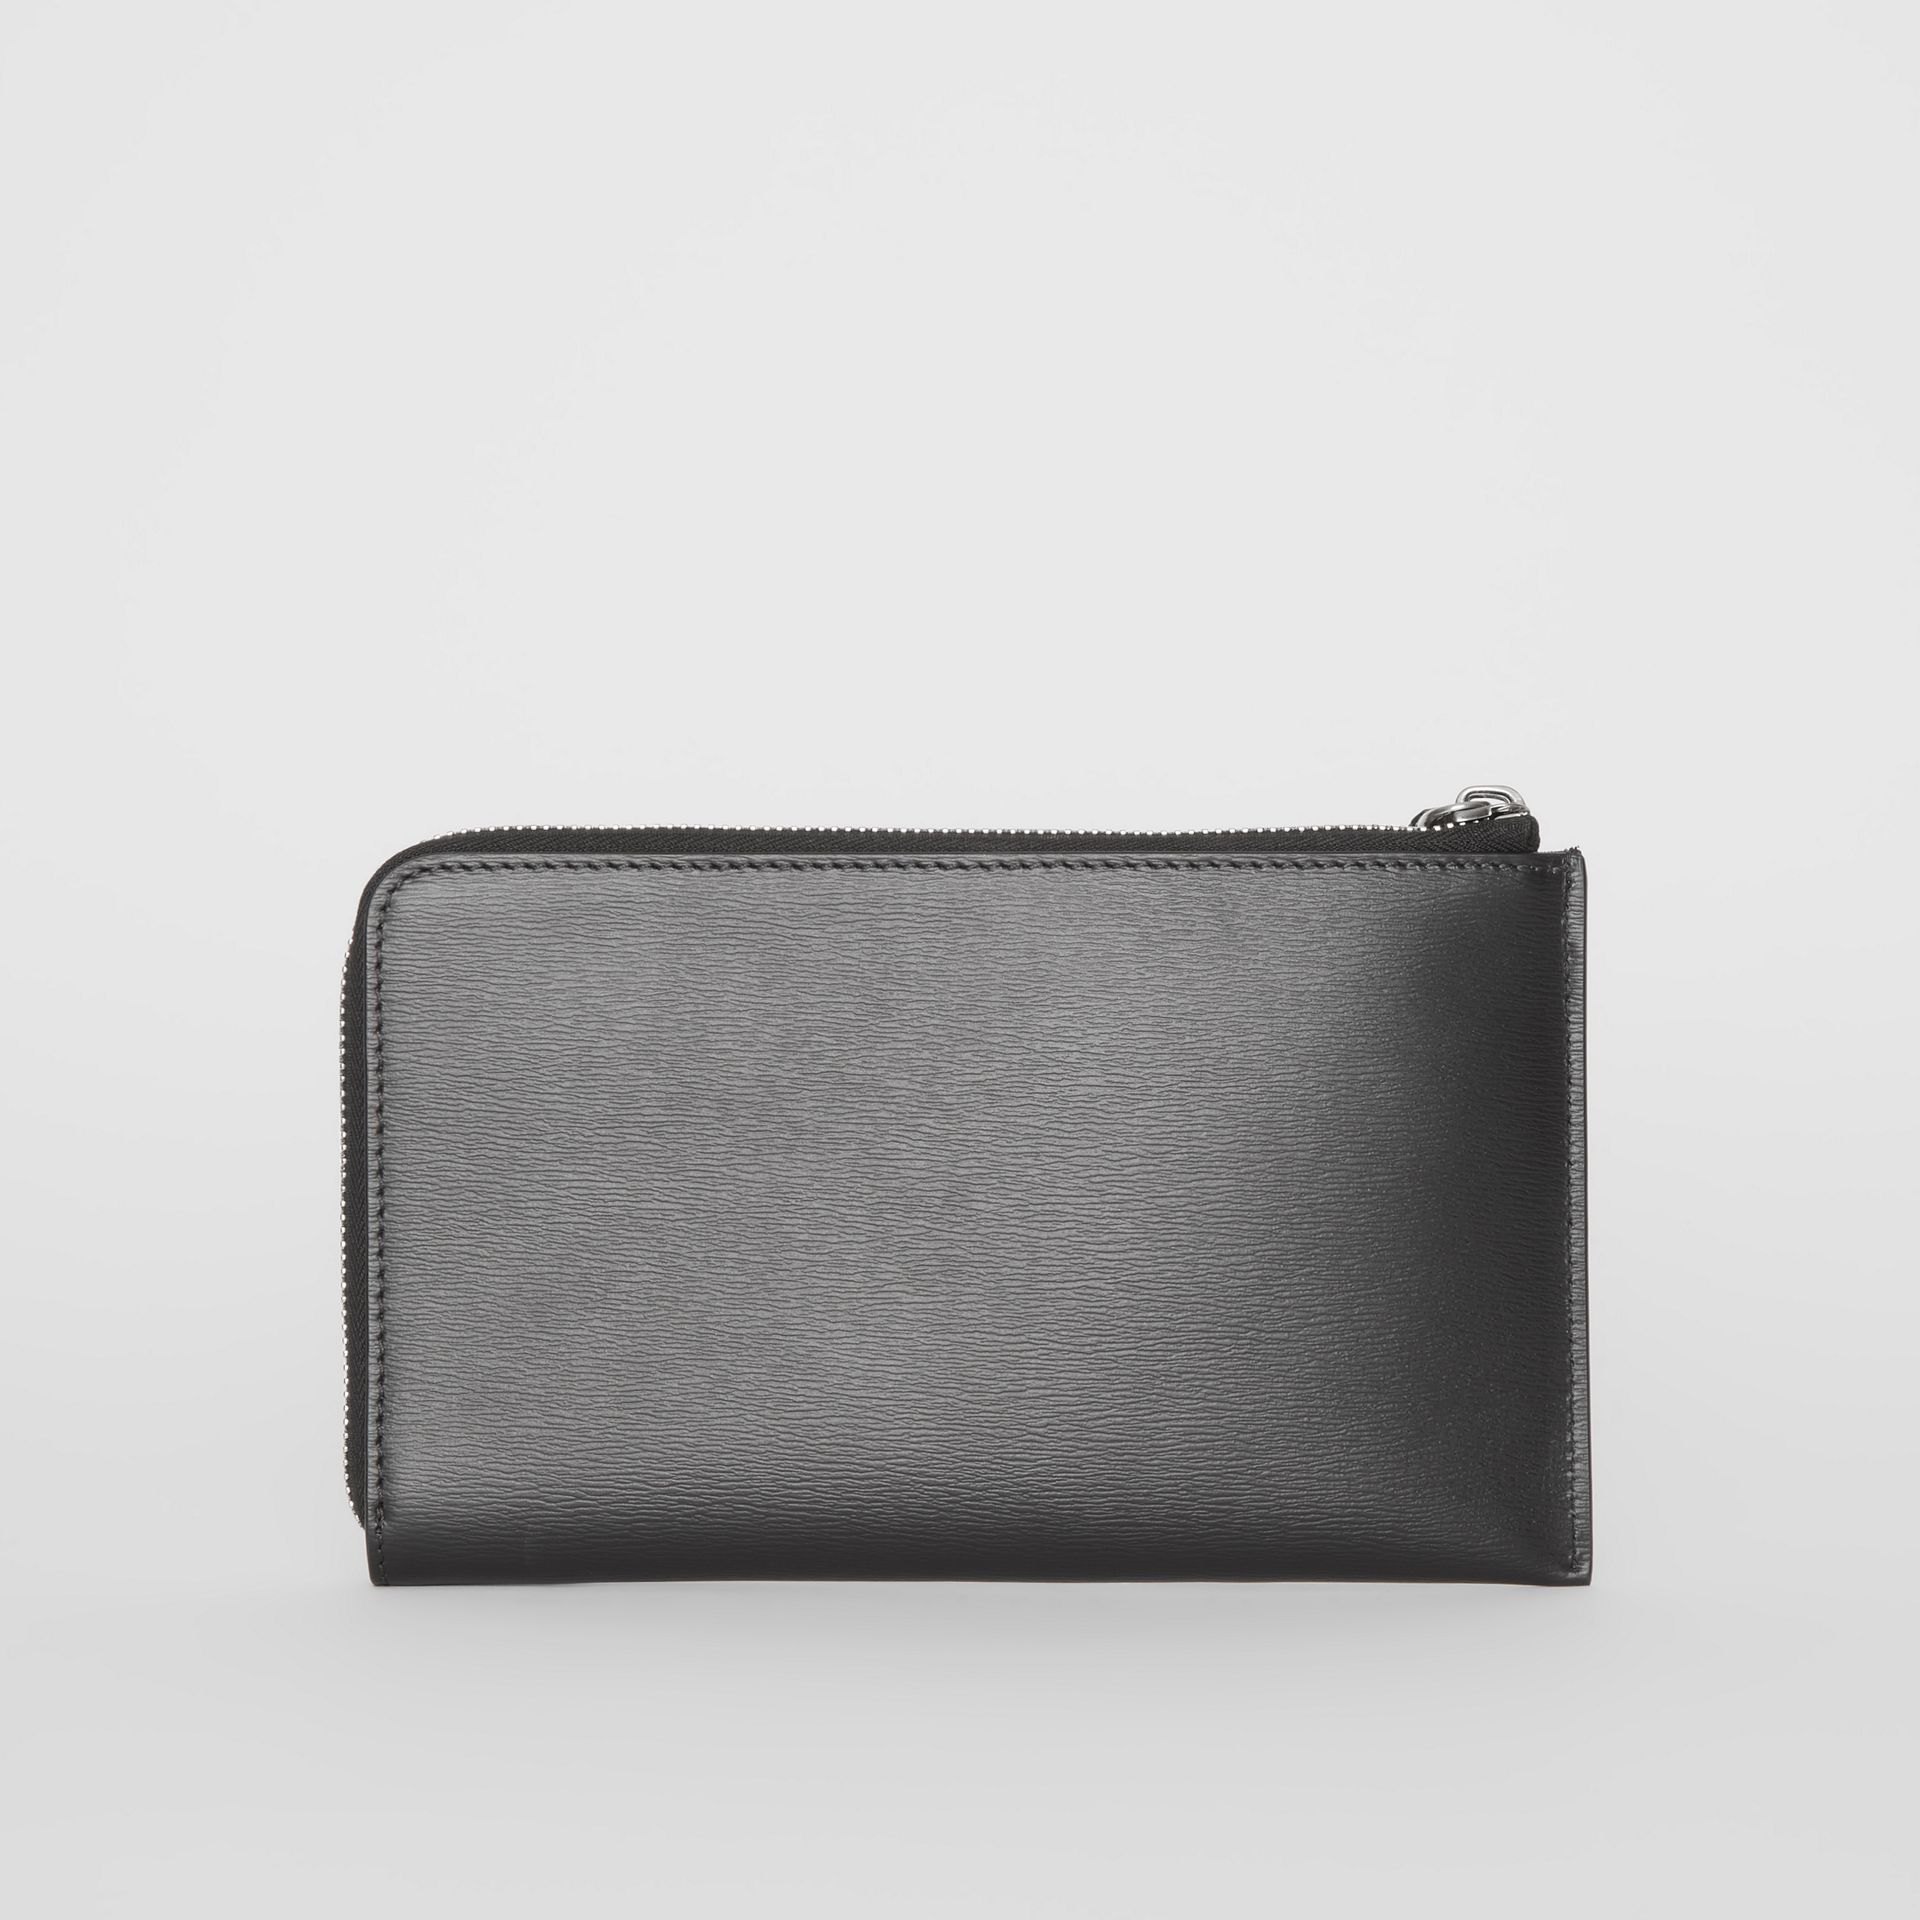 London Leather Travel Wallet in Black - Men | Burberry - gallery image 8